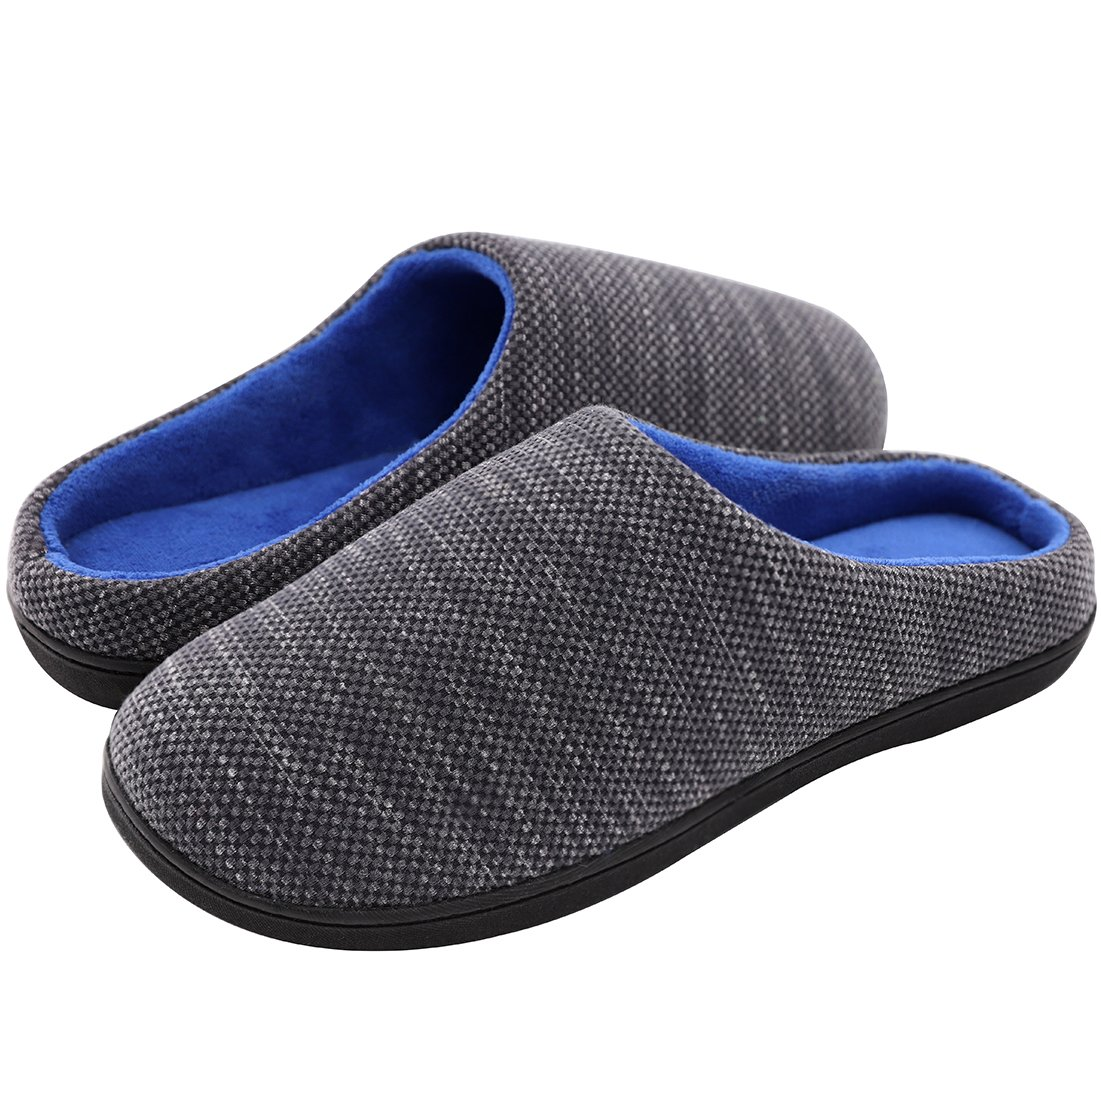 RockDove Men's Two-Tone Memory Foam Slipper(11-12 D(M) US, Heathered Gray/Blue)